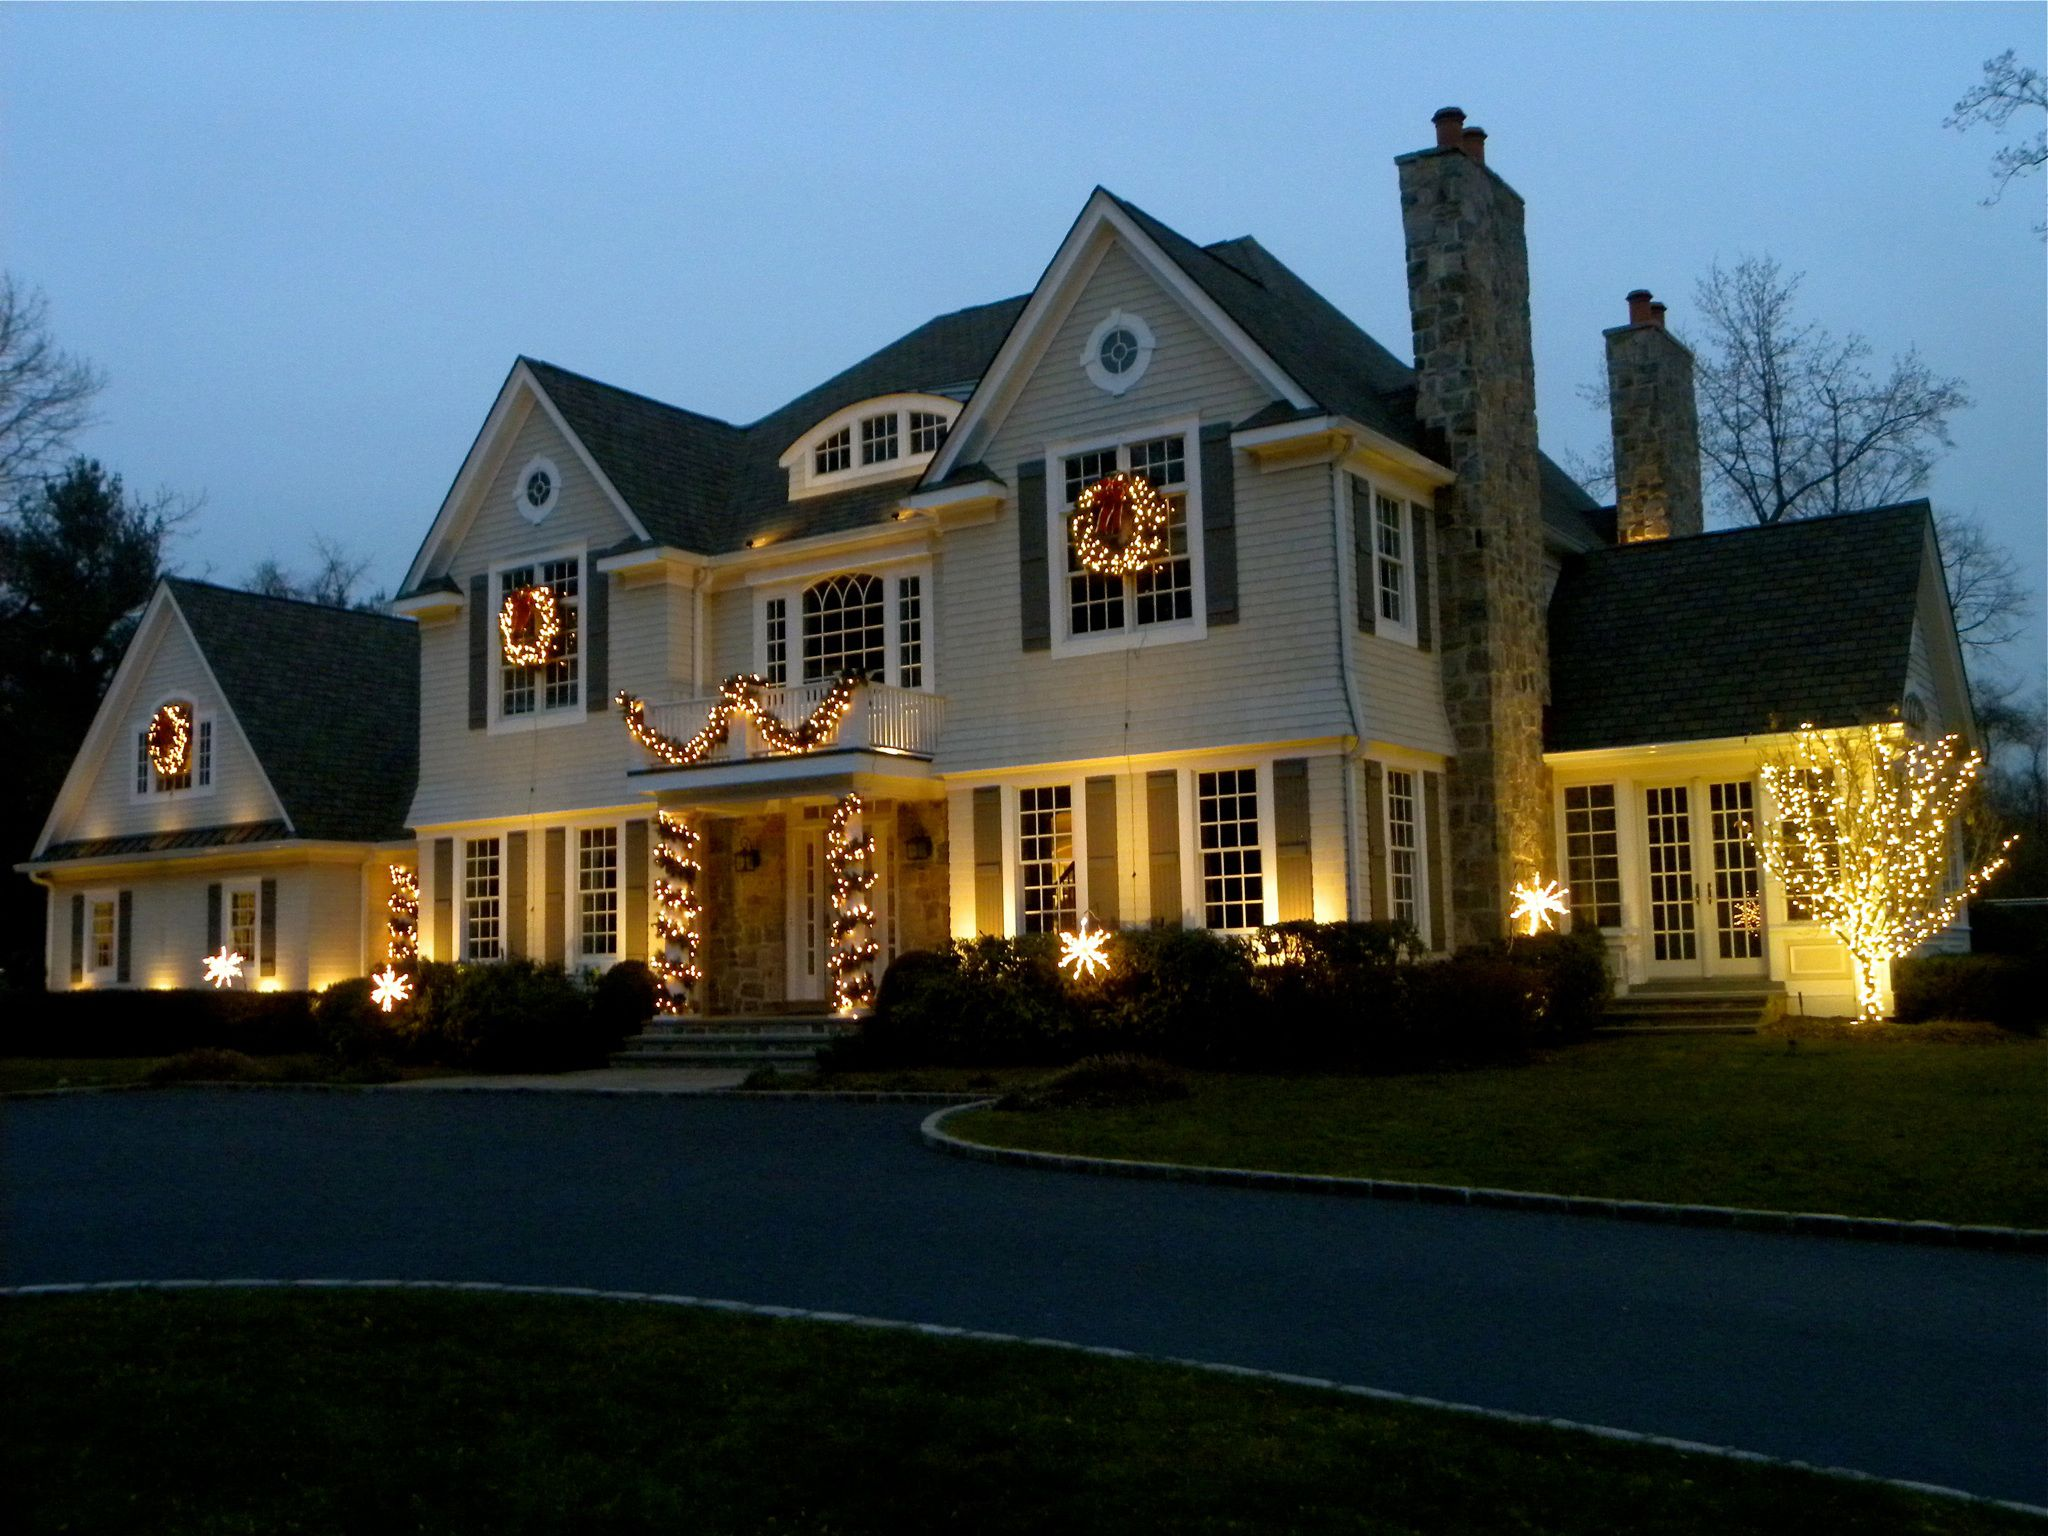 holiday lighting that professional outdoor lighting experts design and install take all the hassle out of